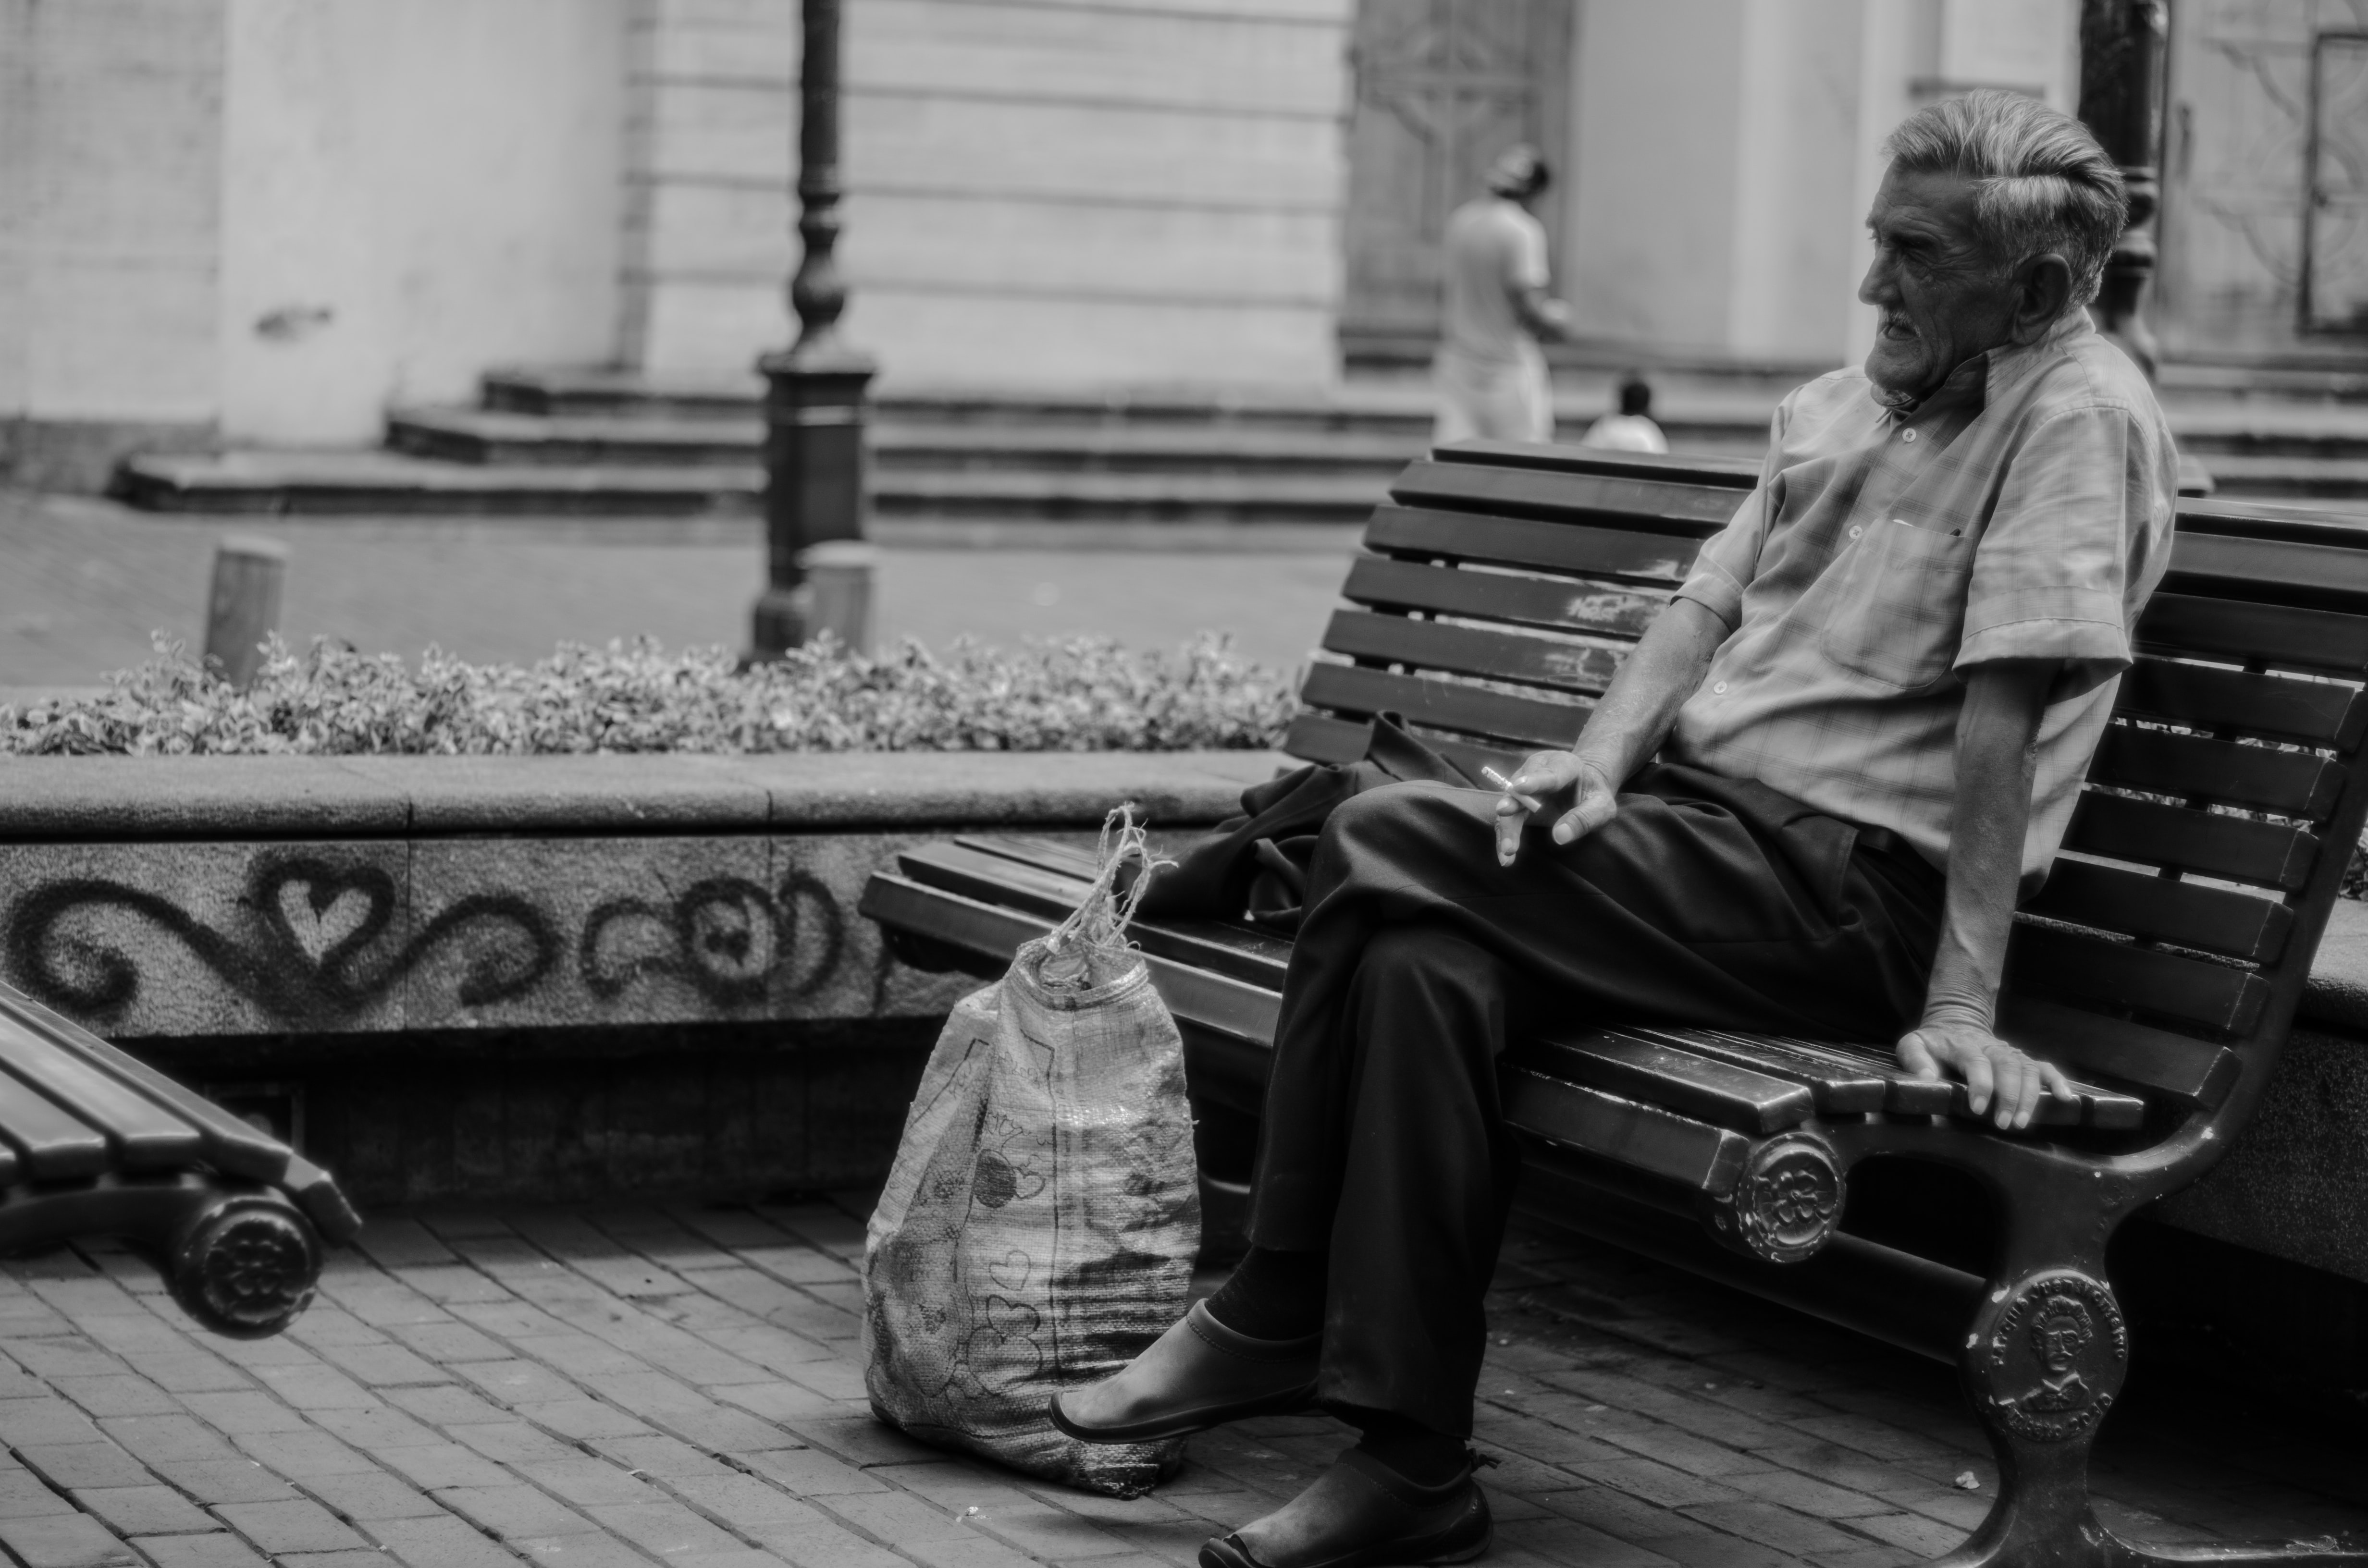 greyscale photography of man sitting on bench